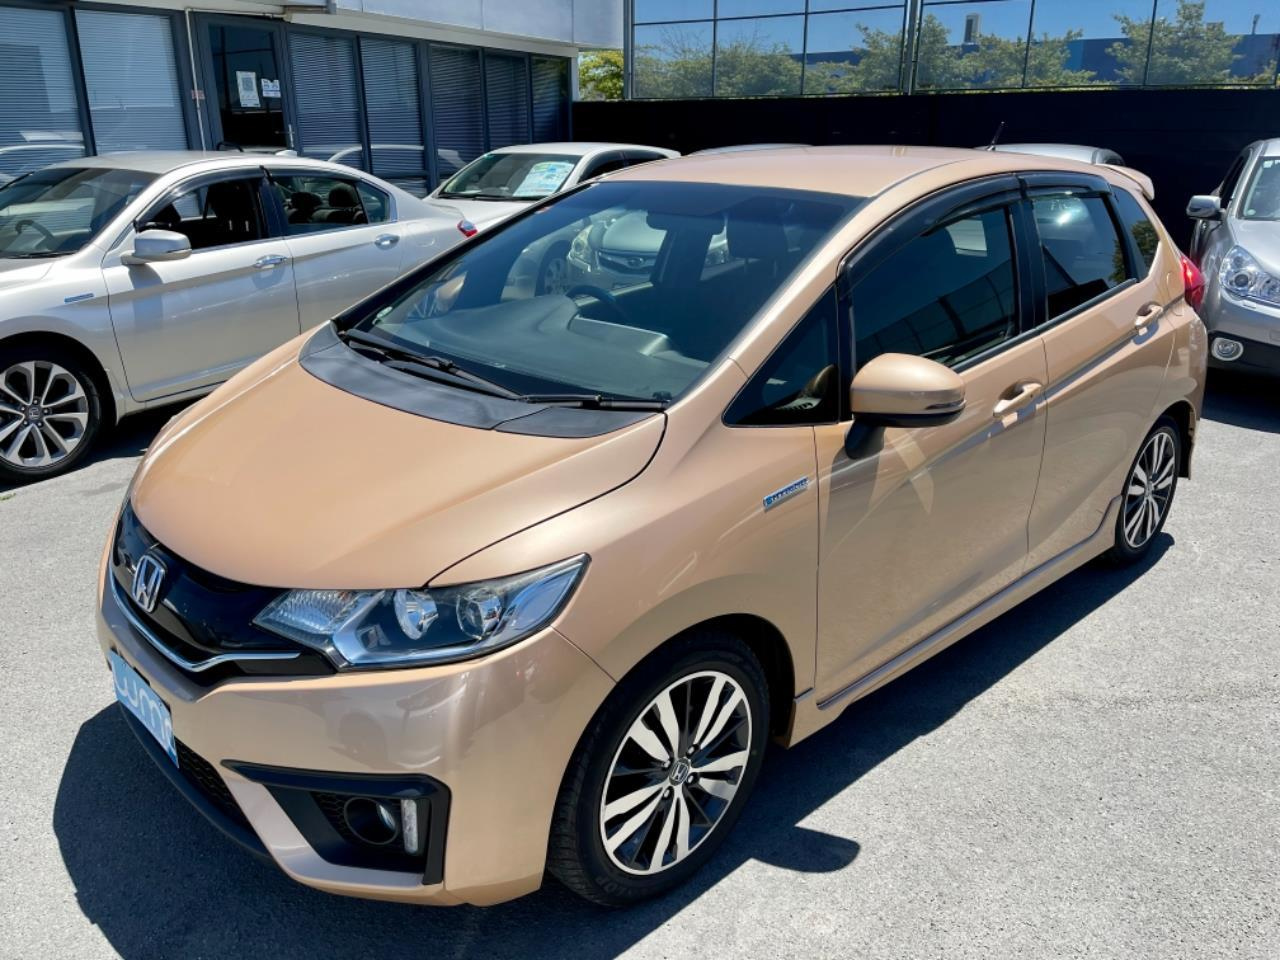 image-3, 2013 Honda Fit RS 1.5lt Hybrid at Christchurch